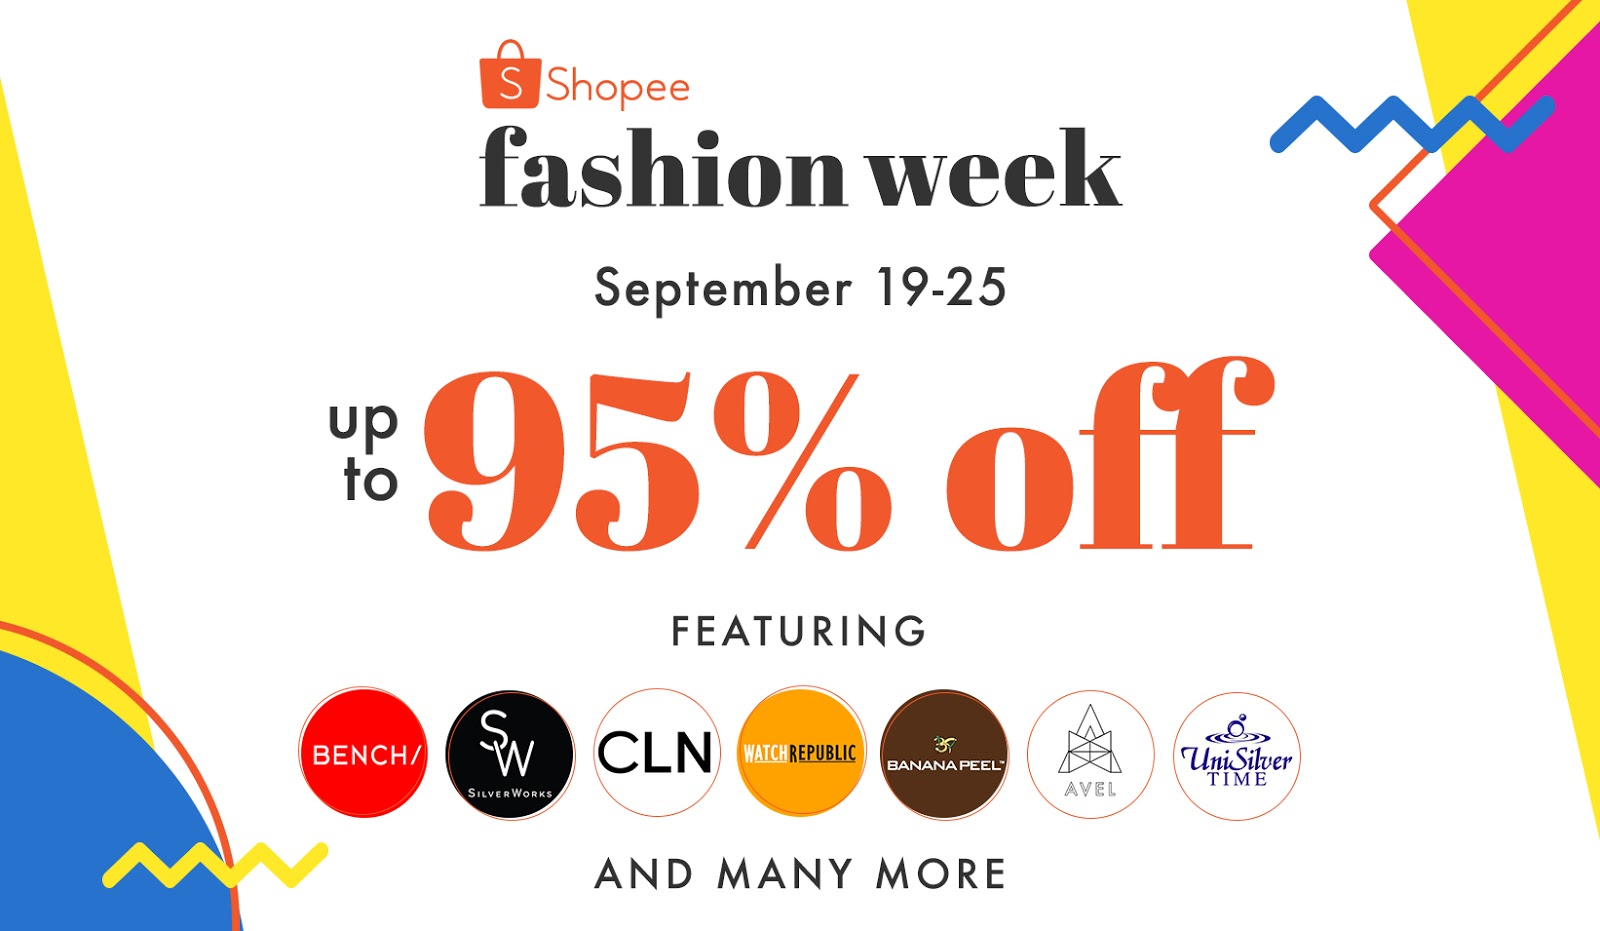 a0713e3b6b Shopee Fashion Week offers Up To 95% Off The Hottest Fashion Items ...